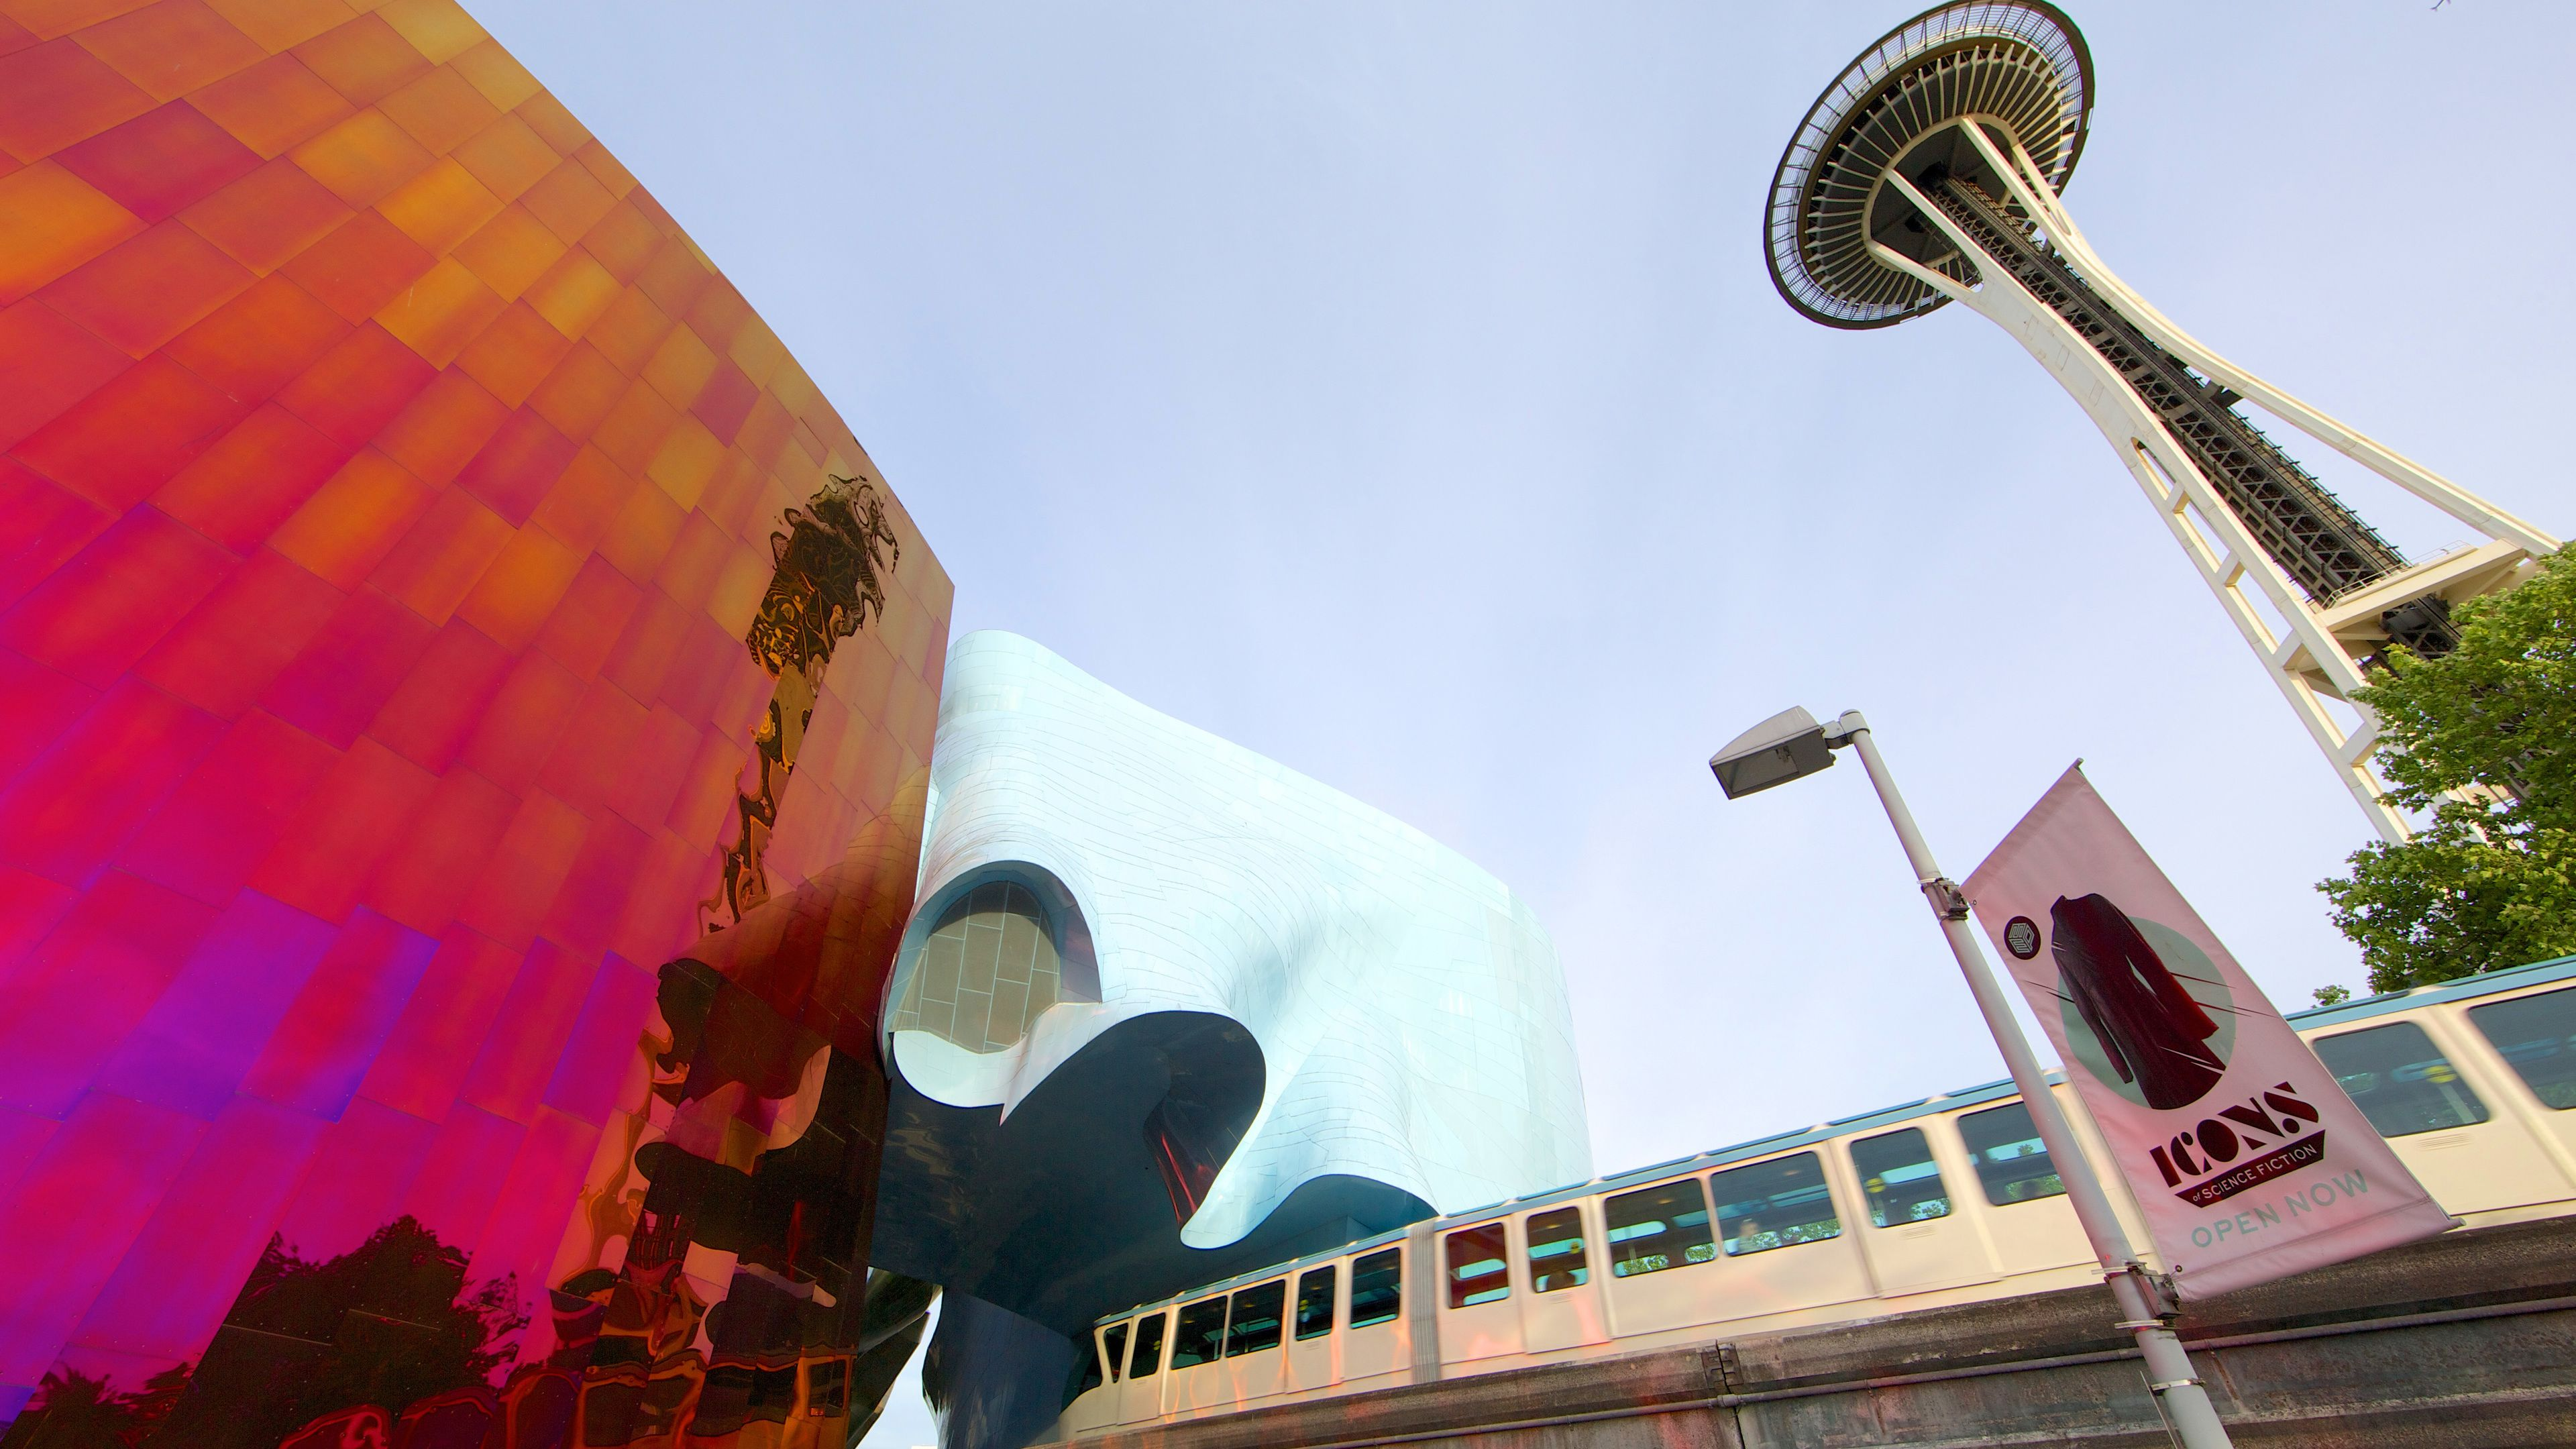 MoPop with Monorail and Space Needle